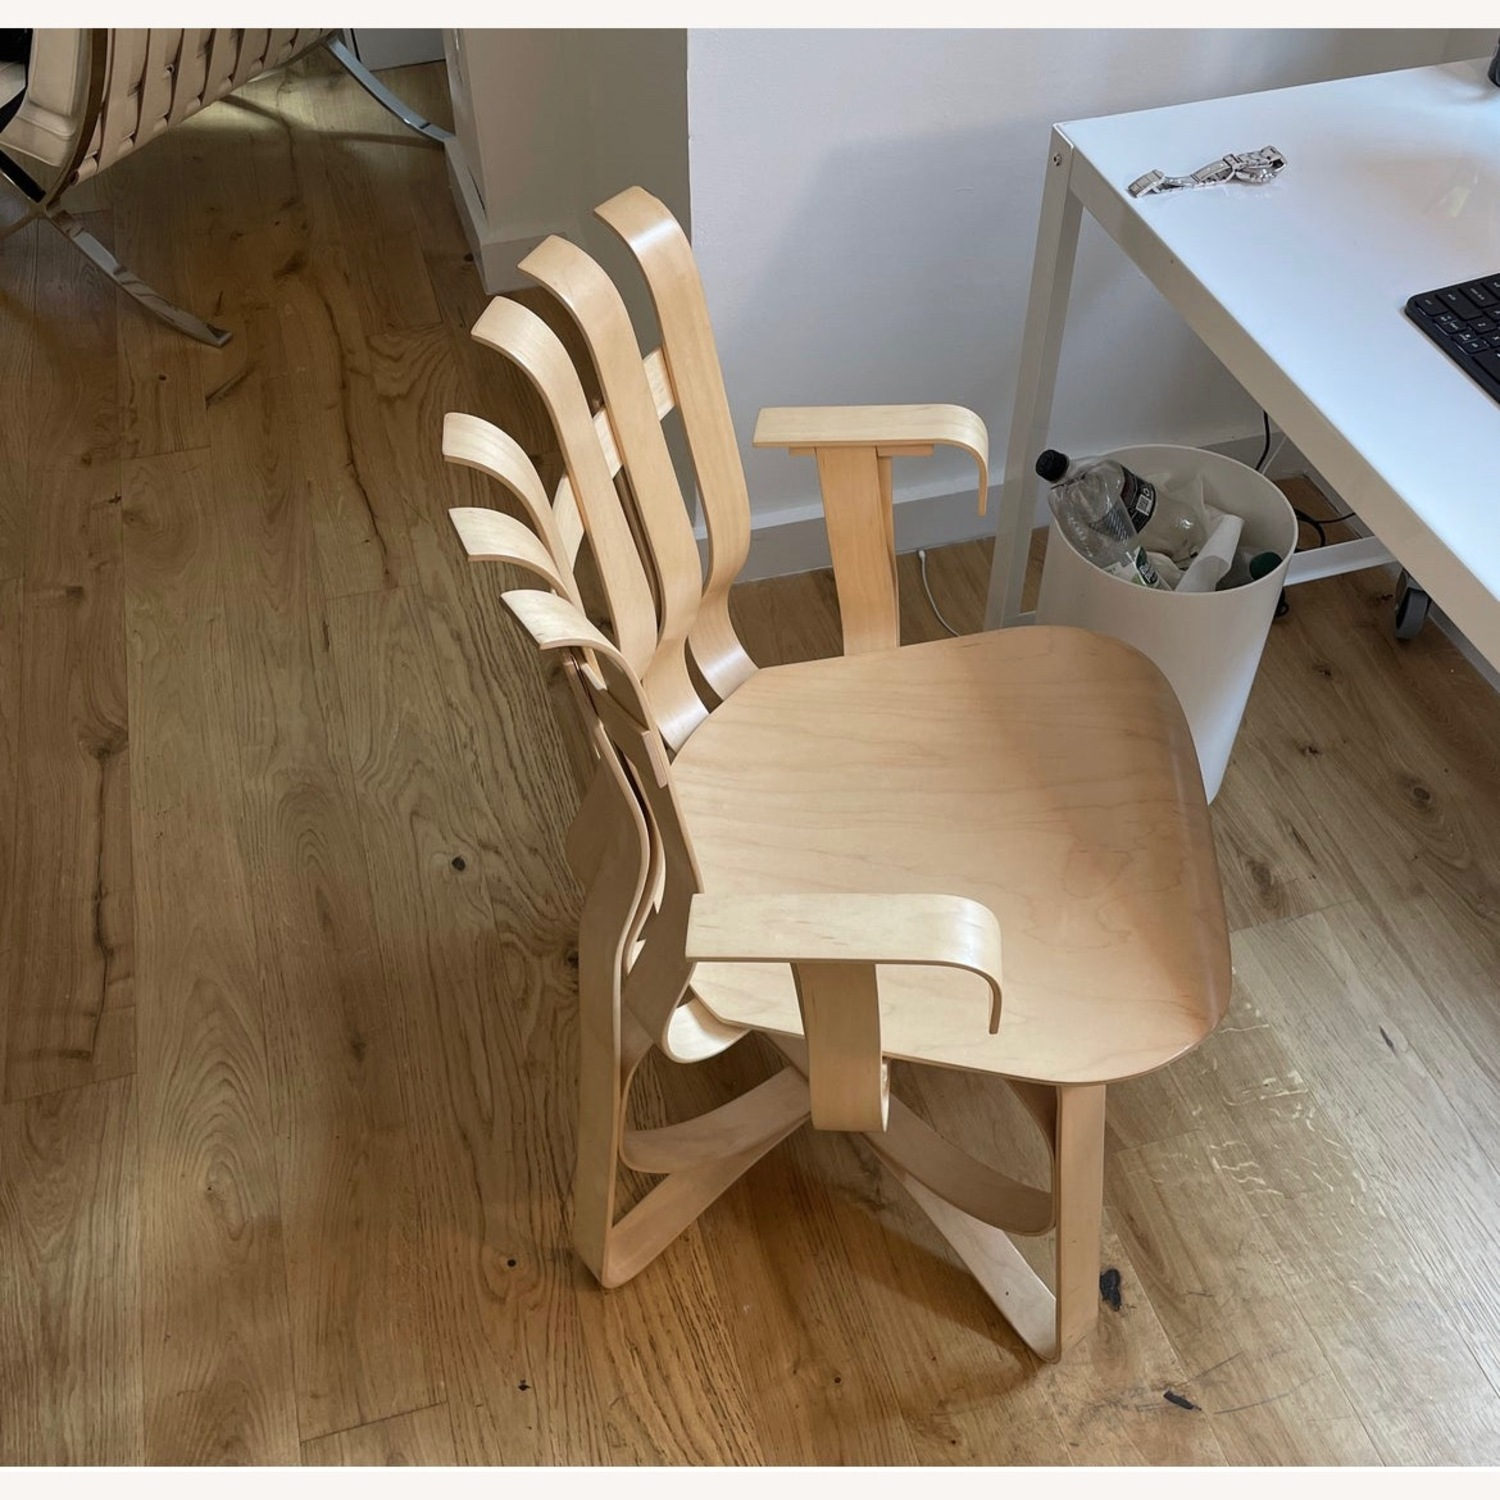 Knoll Frank Gehry Hat Trick Chair - image-4